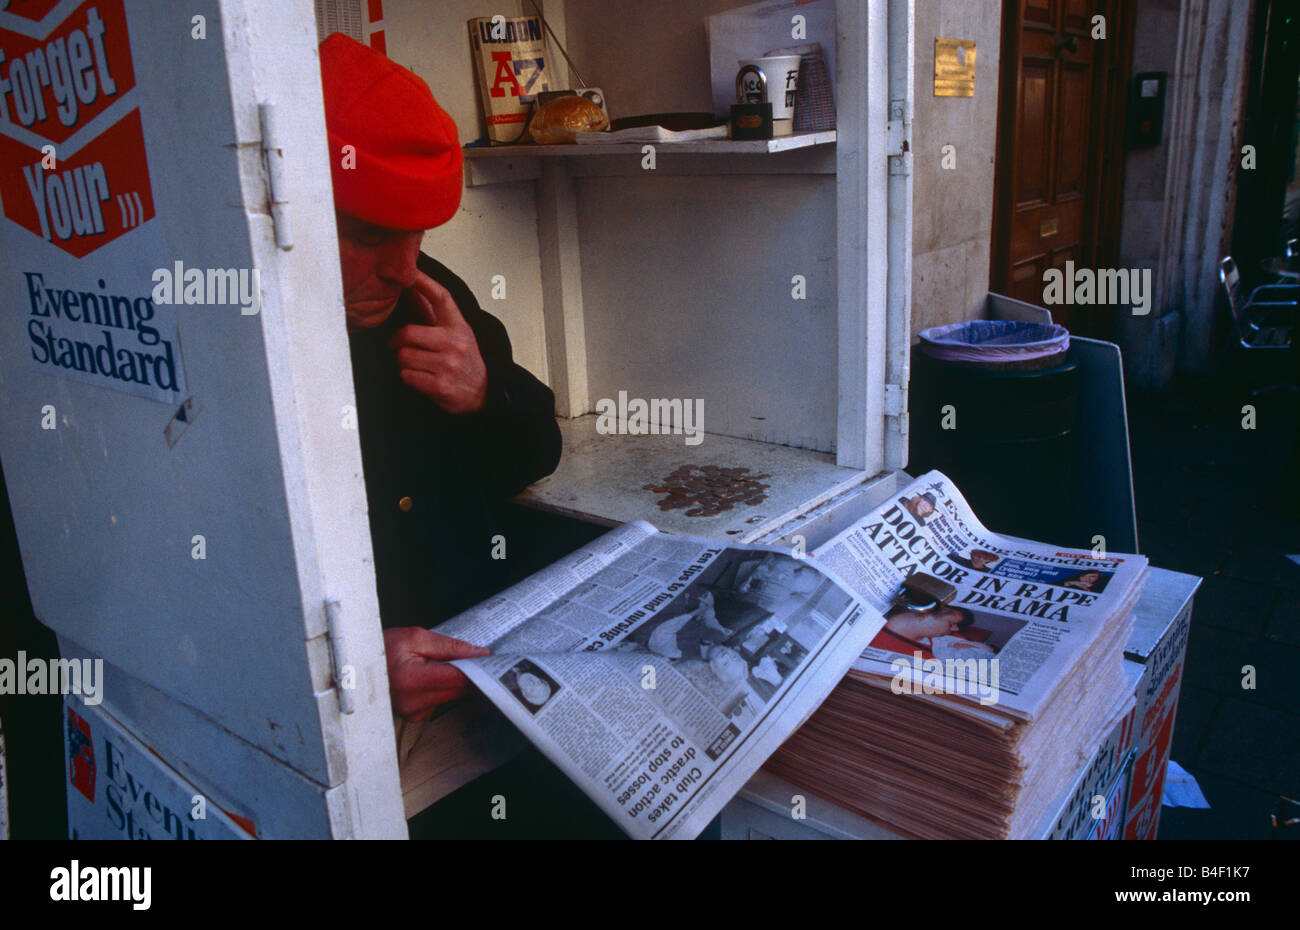 A man reading a newspaper at his stand in London. Stock Photo